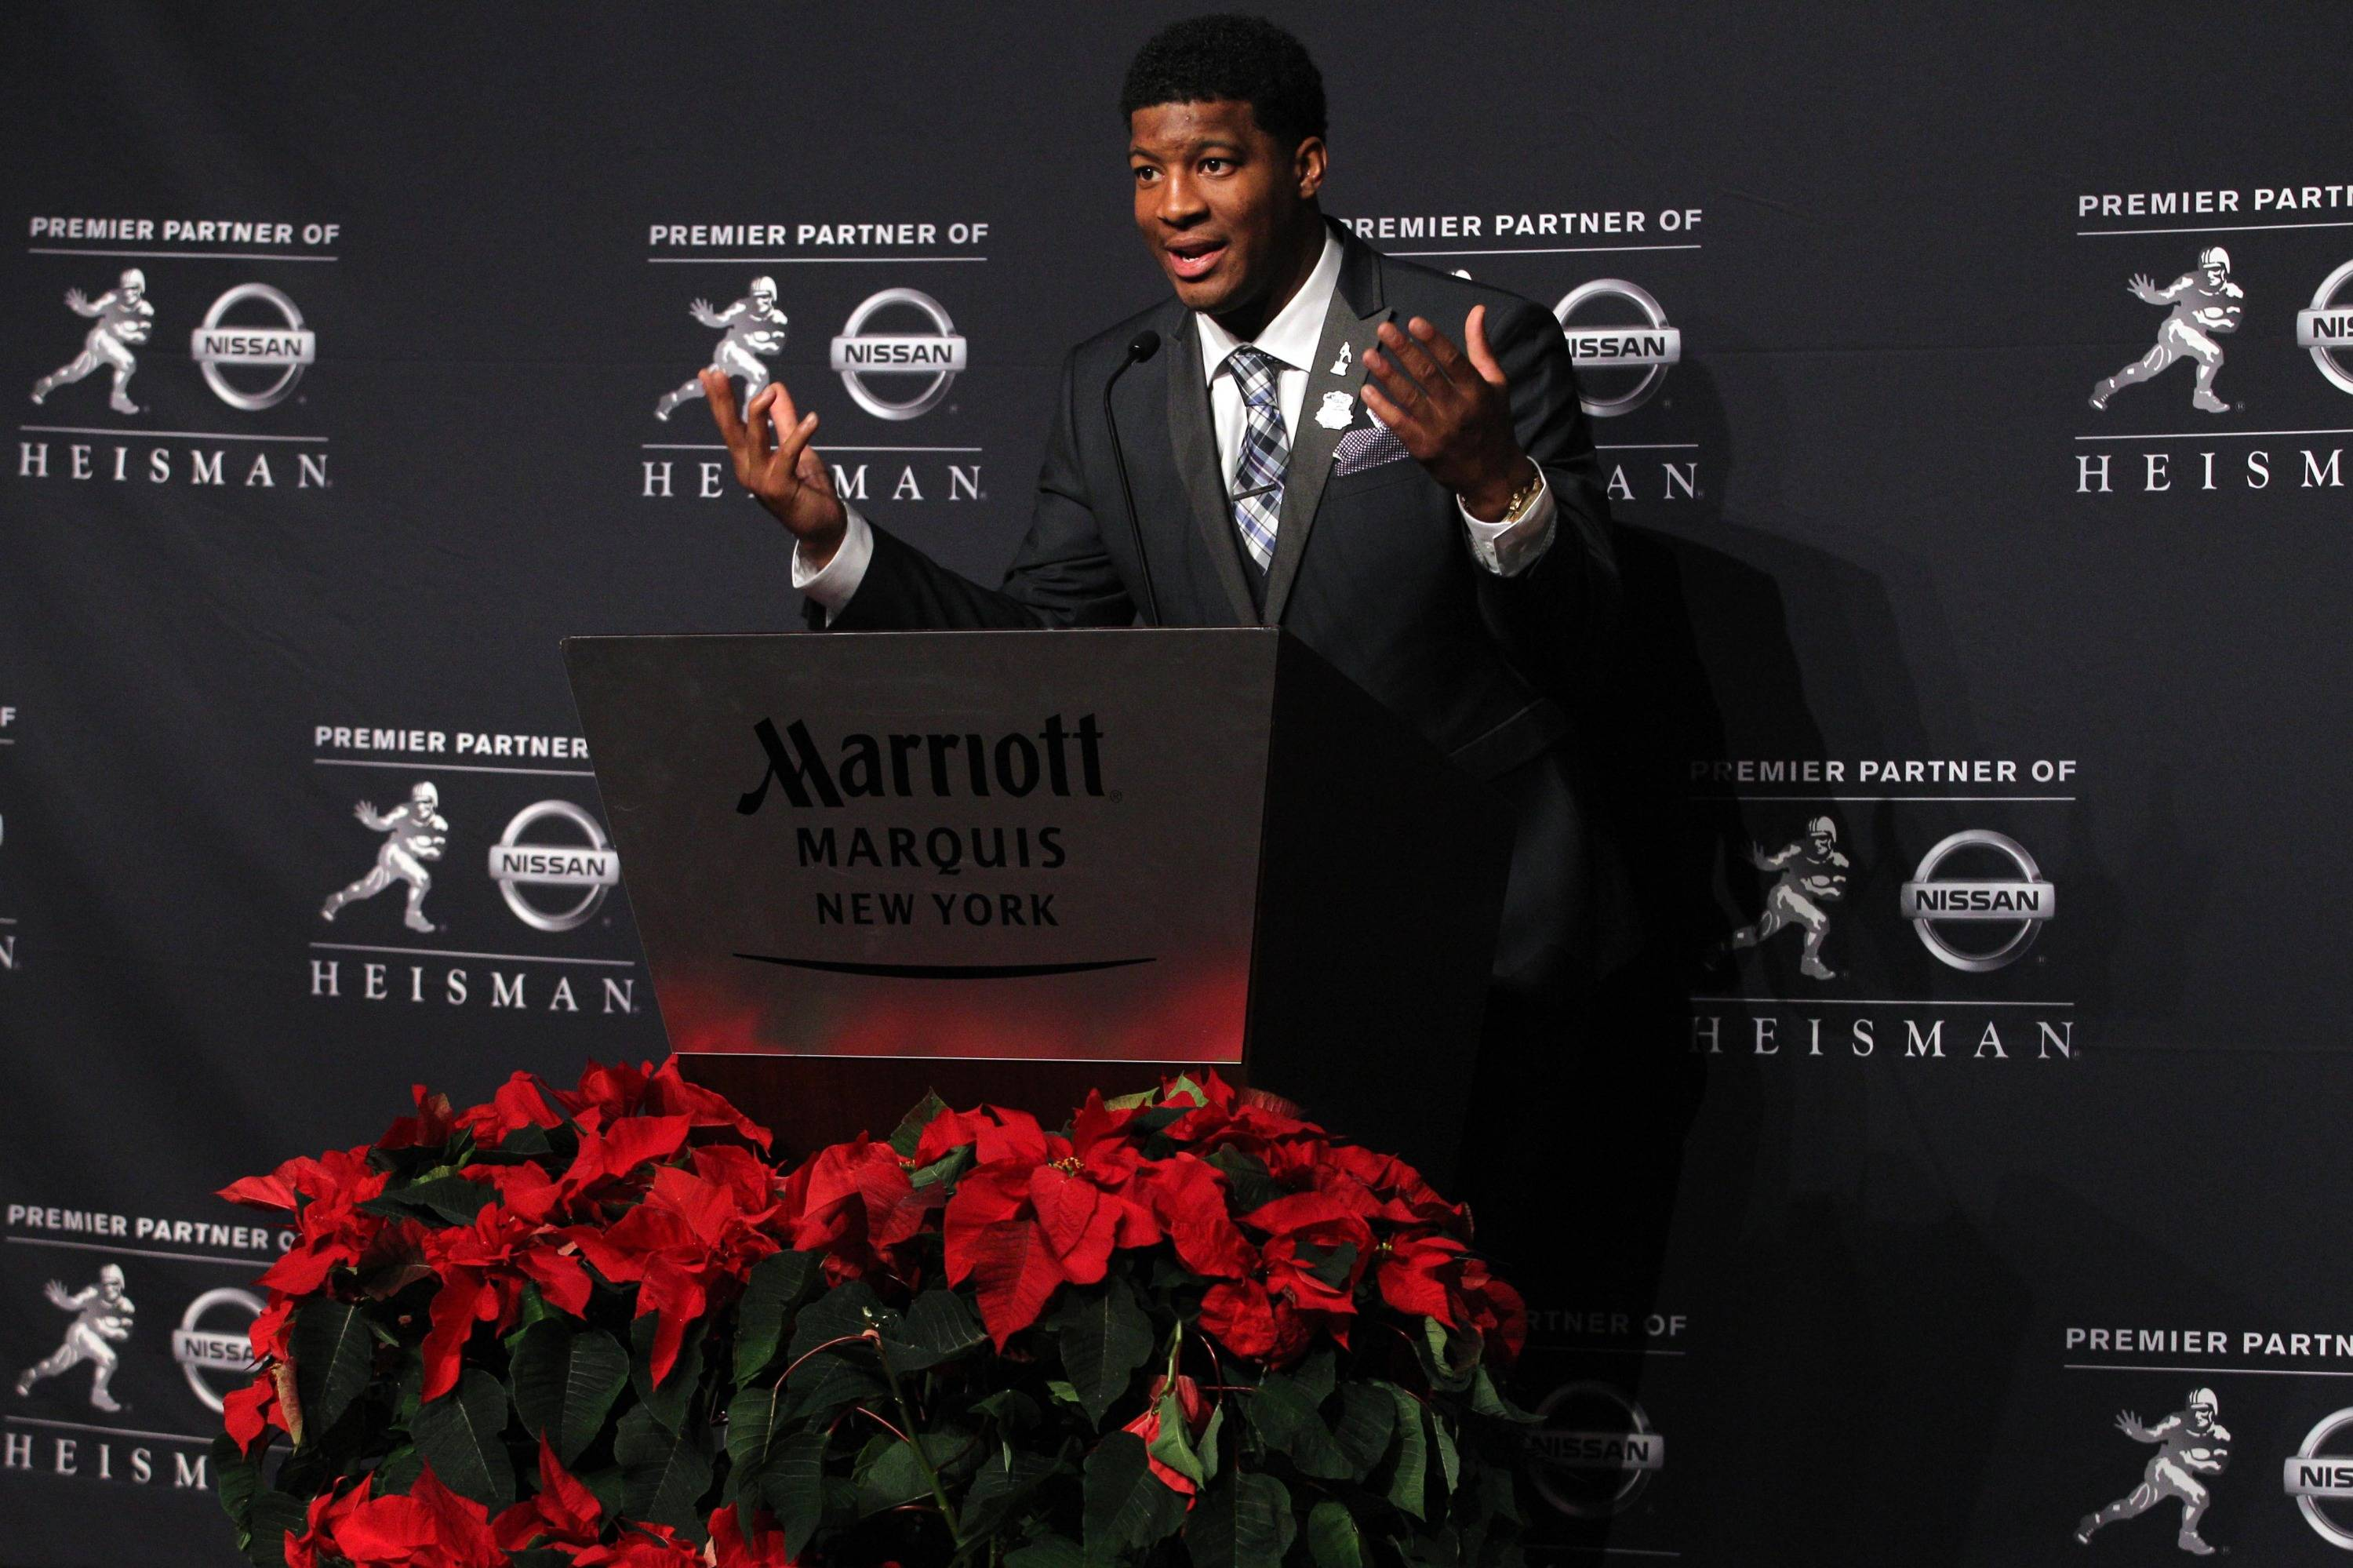 Dec 14, 2013; New York, NY, USA; Seminoles quarterback and 2013 Heisman Trophy winner Jameis Winston answers questions during a press conference. Brad Penner-USA TODAY Sports